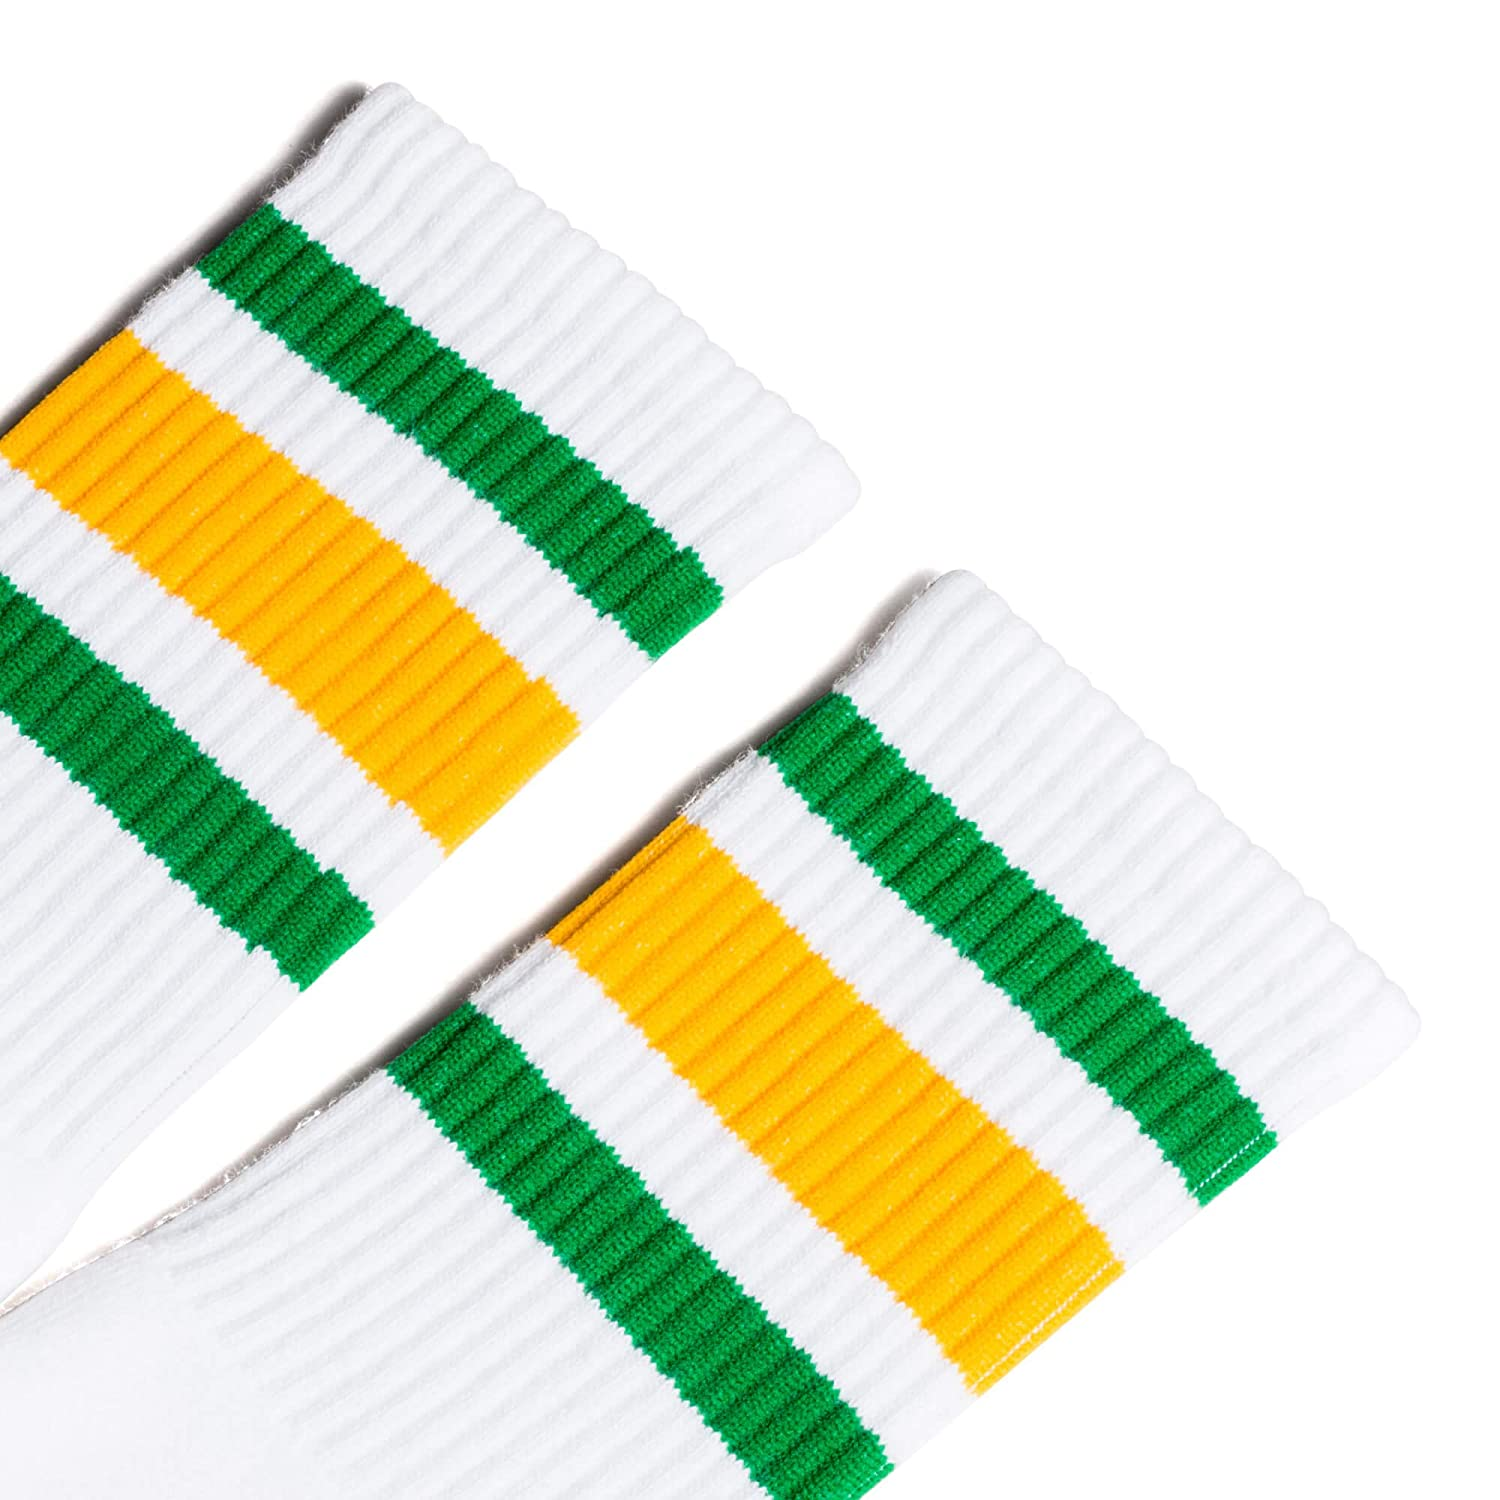 Large//X-Large 10-13 Socco Socks Unisex White Triple Striped Green//Gold Crew Tube Socks